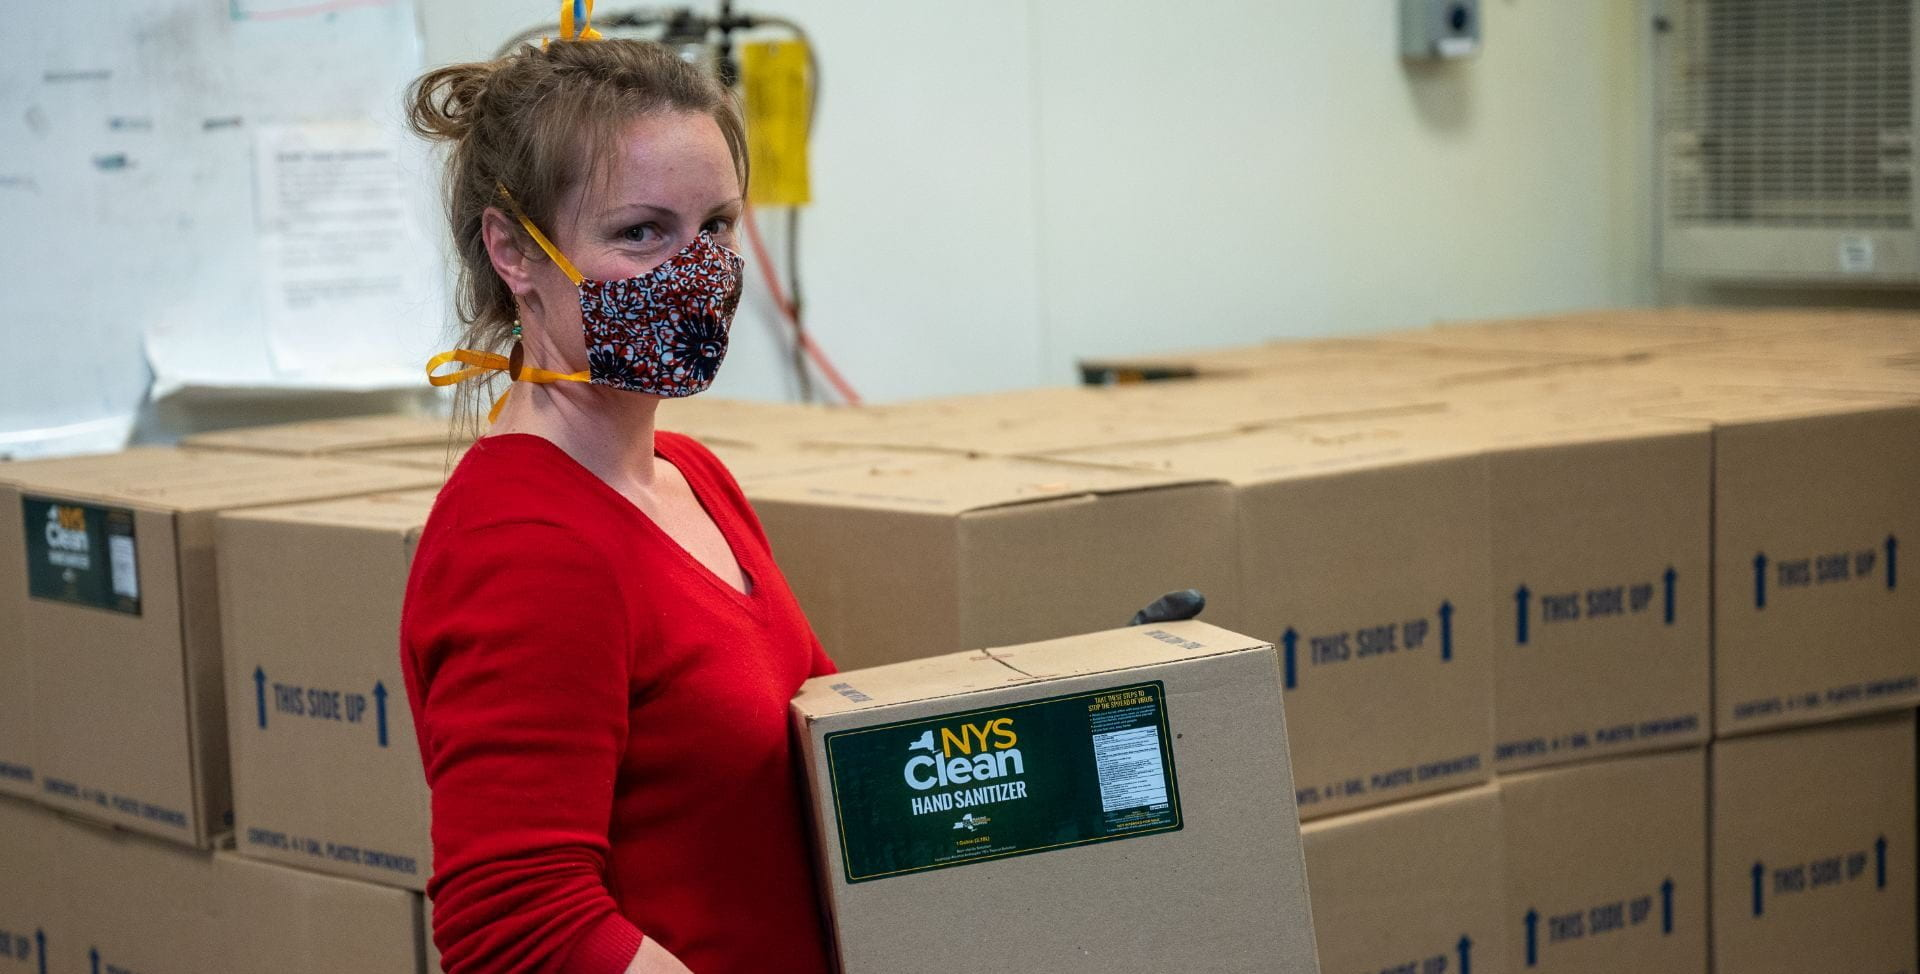 Woman in face covering holding box of NYS Clean Hand Sanitizer